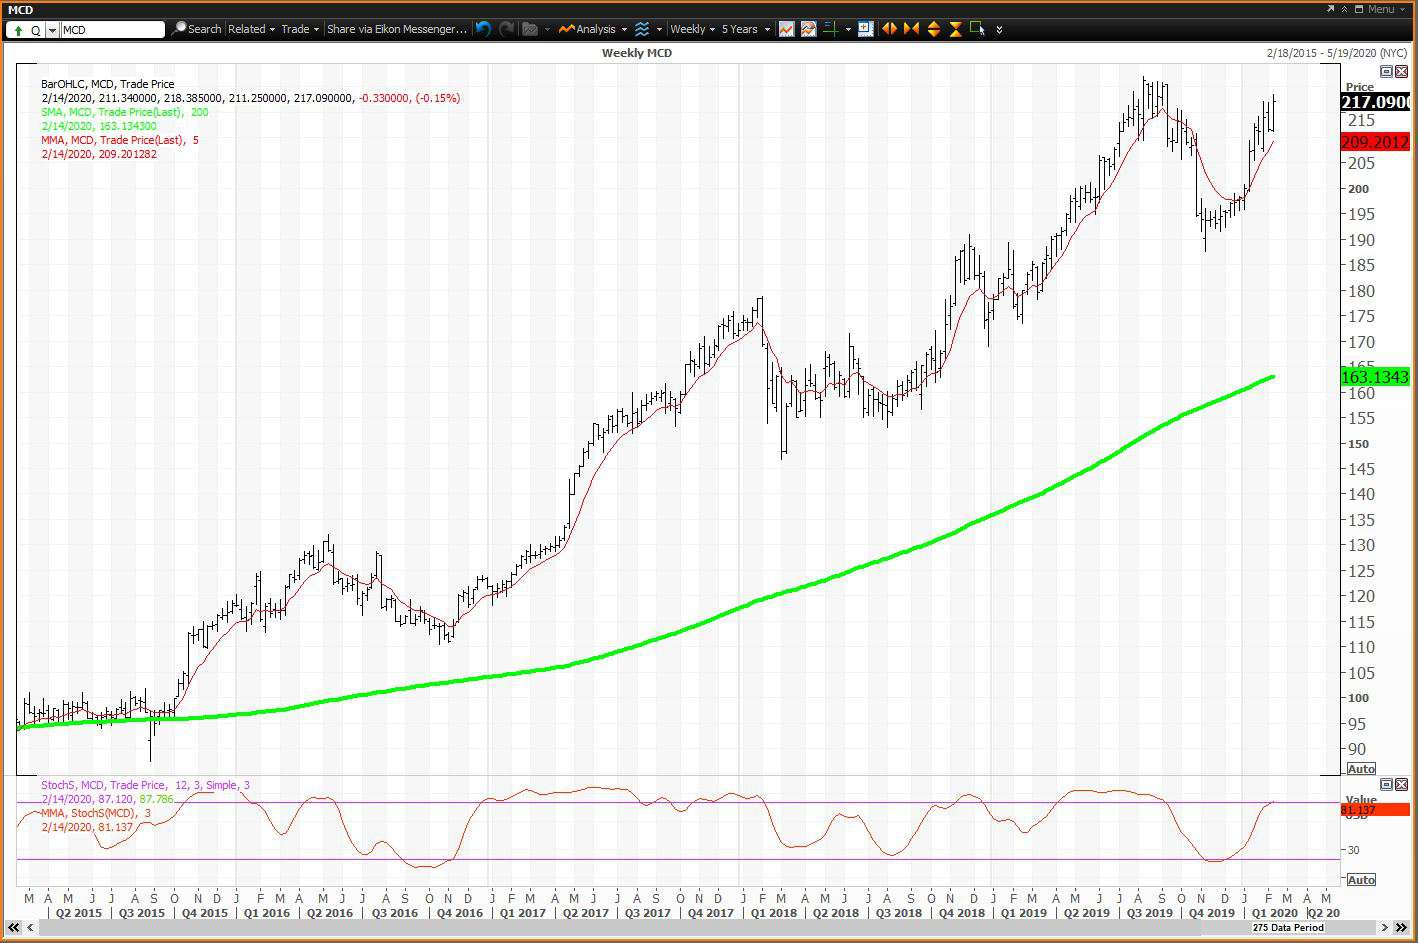 Weekly chart showing the share price performance of McDonald's Corporation (MCD)